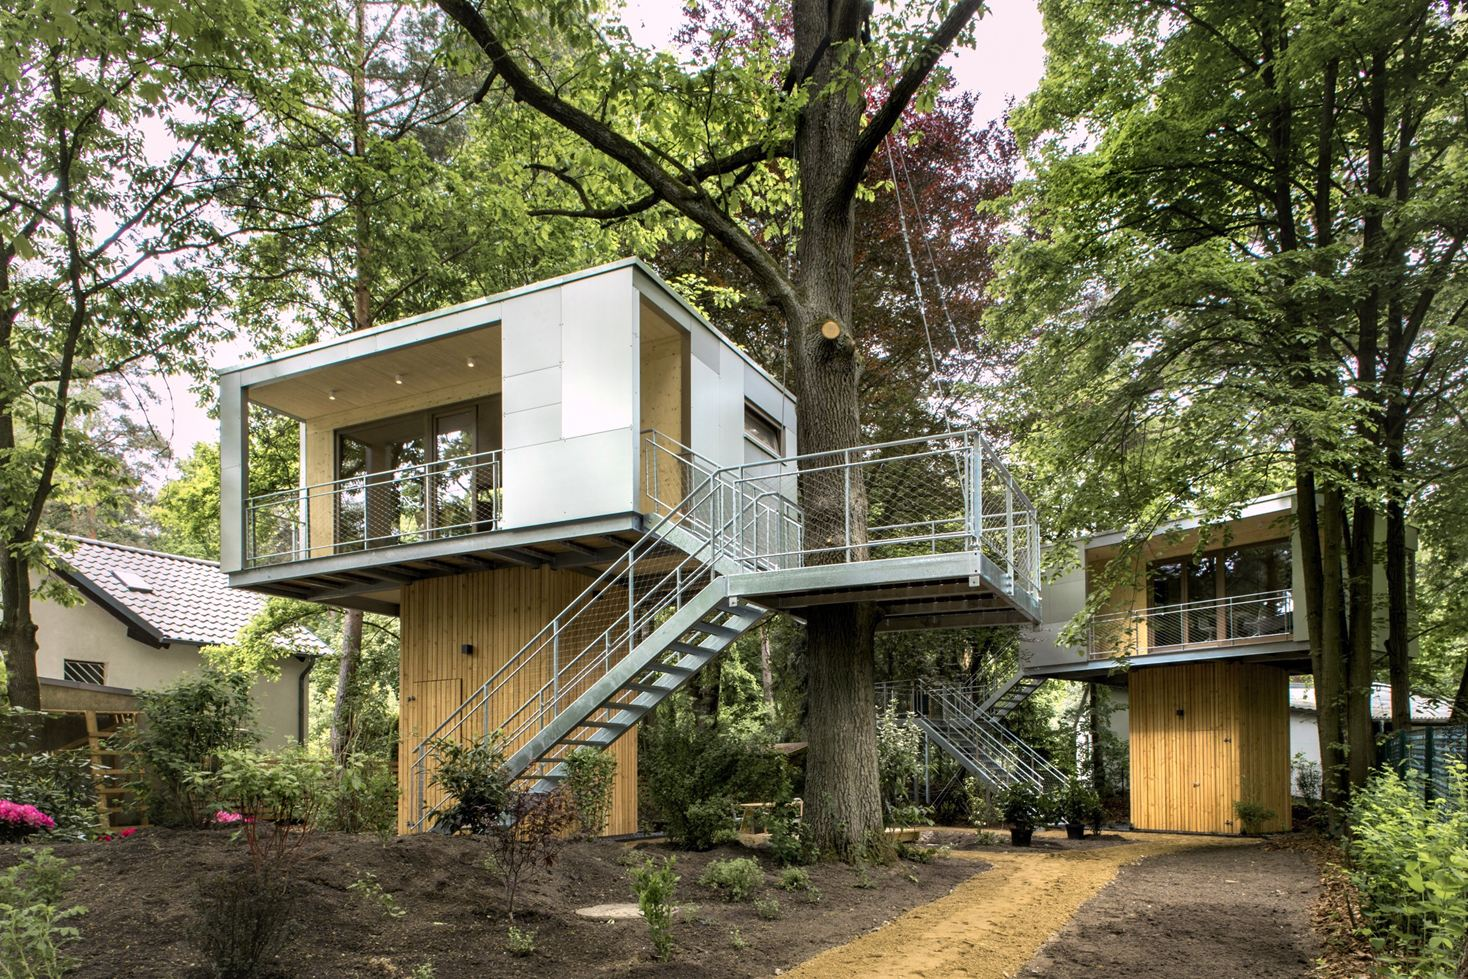 Urban Treehouse in Berlin, Germany by baumraum